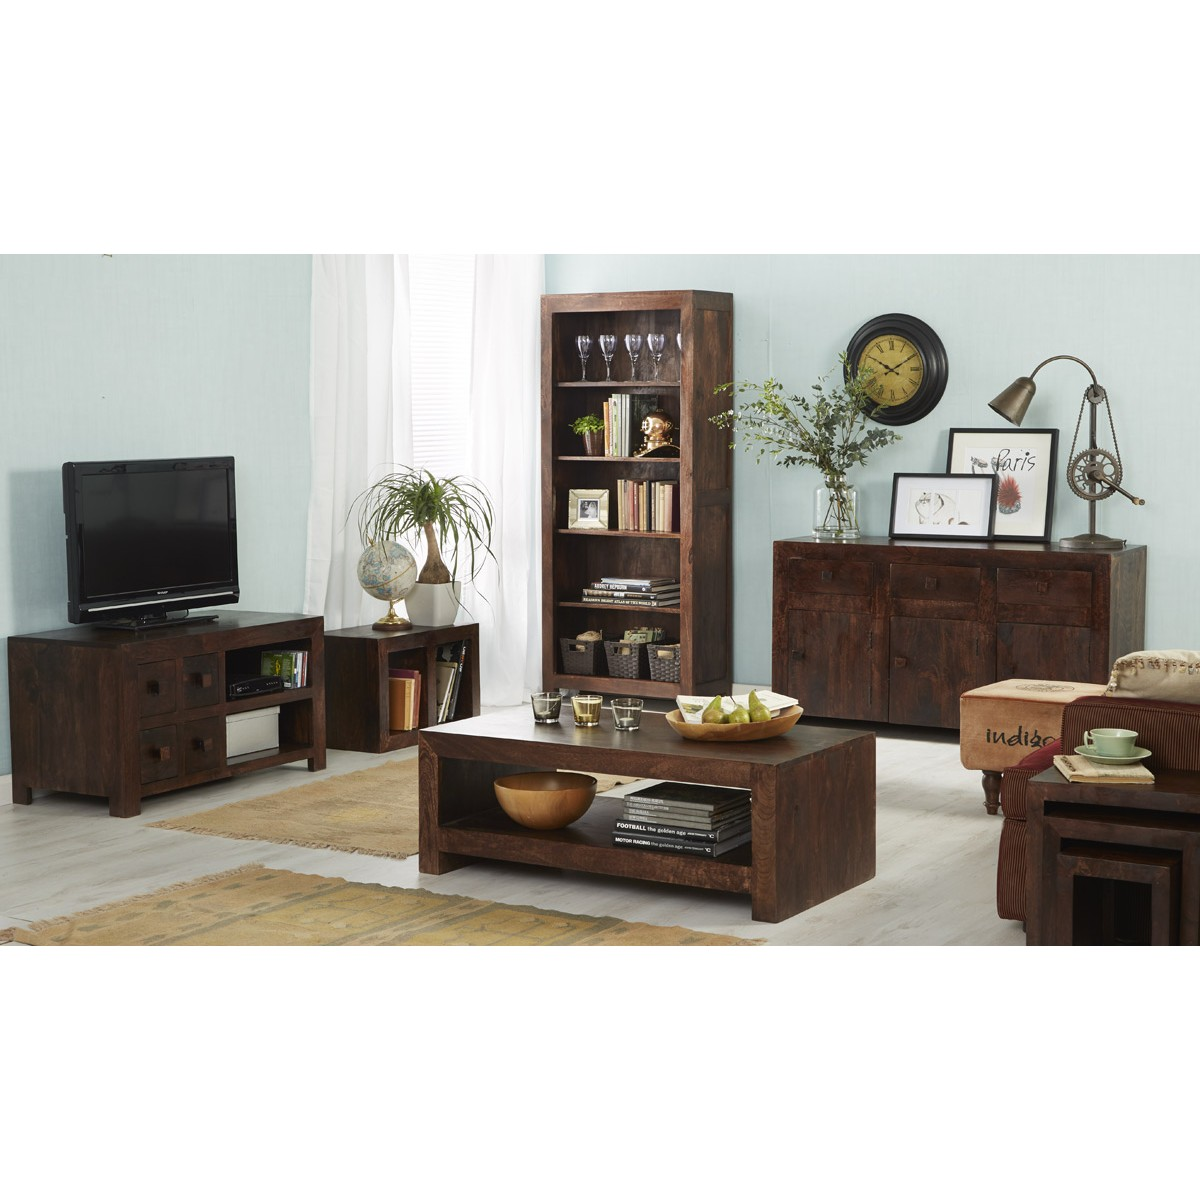 Dakota Mango Cubed Nest Of 2 Tables Verty Indian Furniture